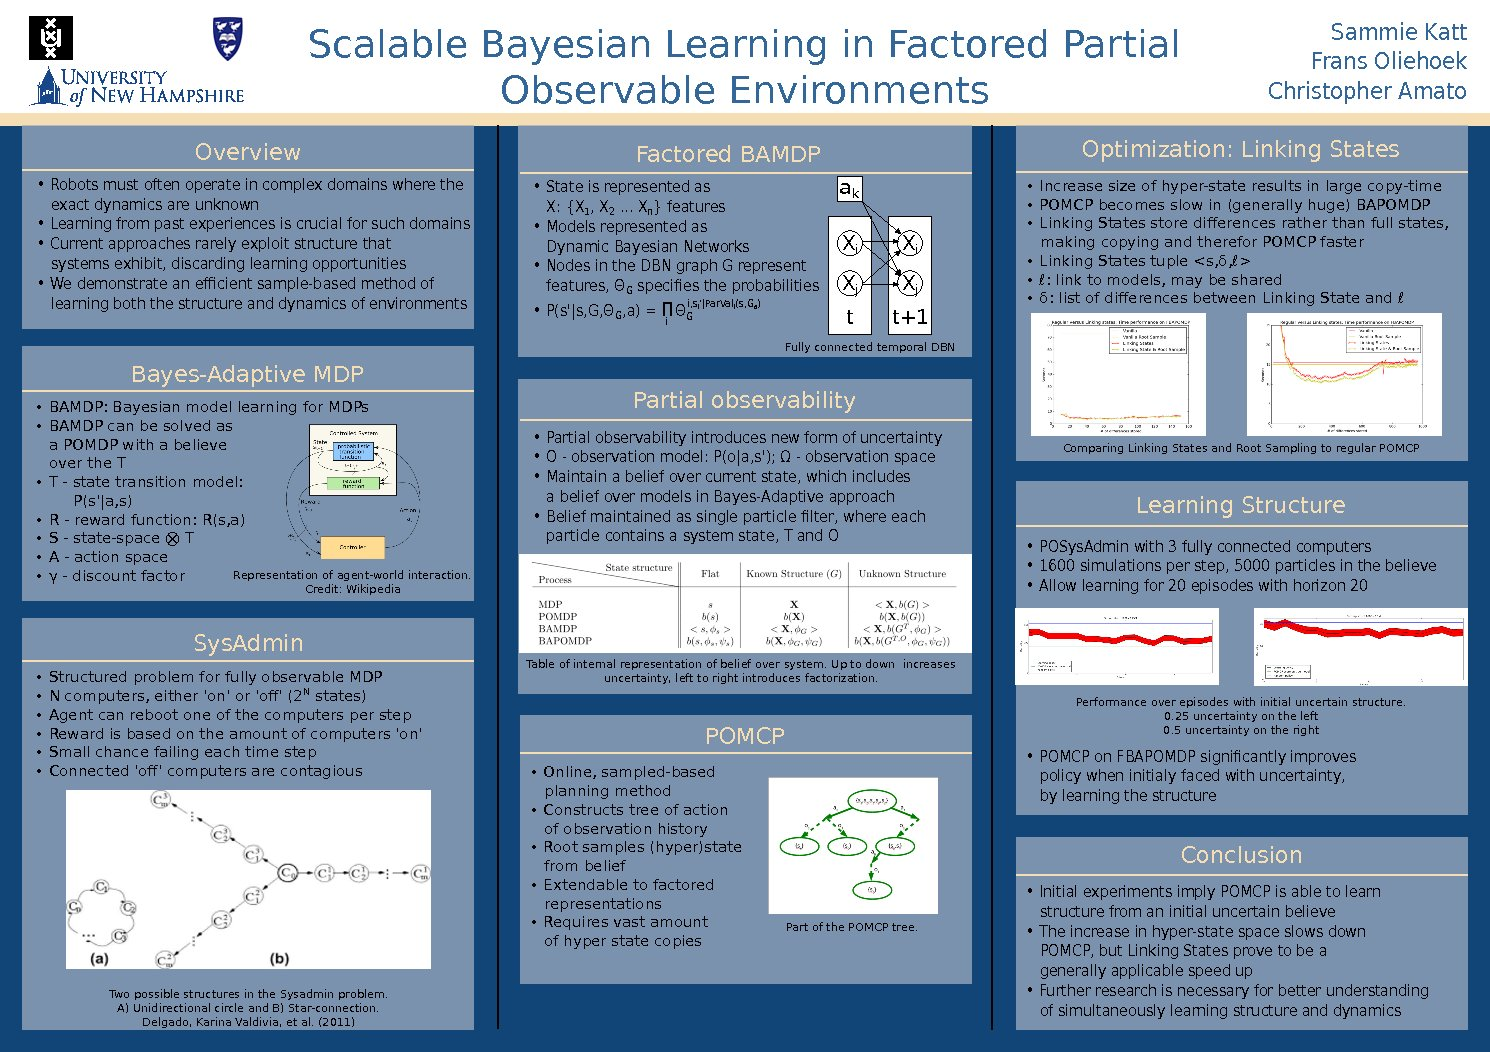 Scalable Bayesian Learning In Factored Partial Observable Environments by skat